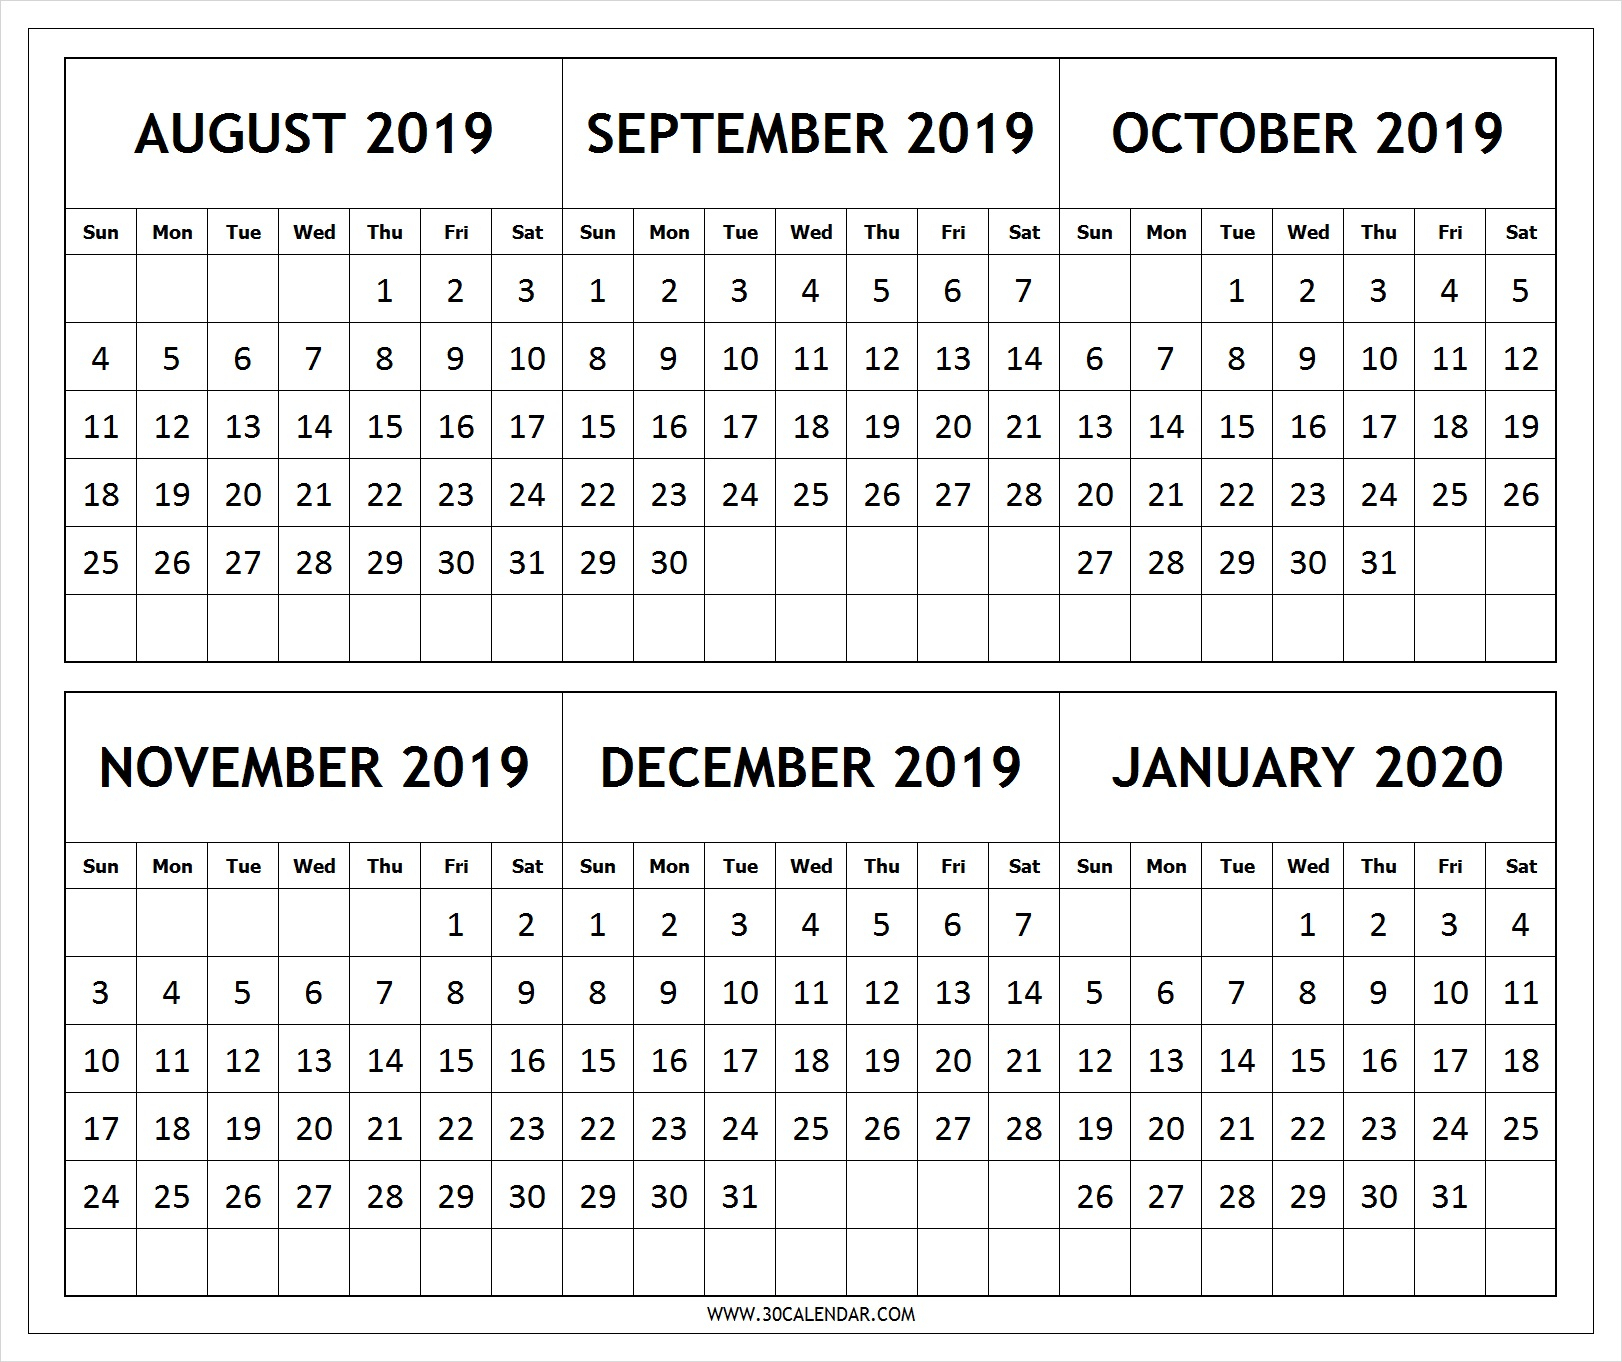 Calendar 2019 August To 2020 January Printable | 6 Month